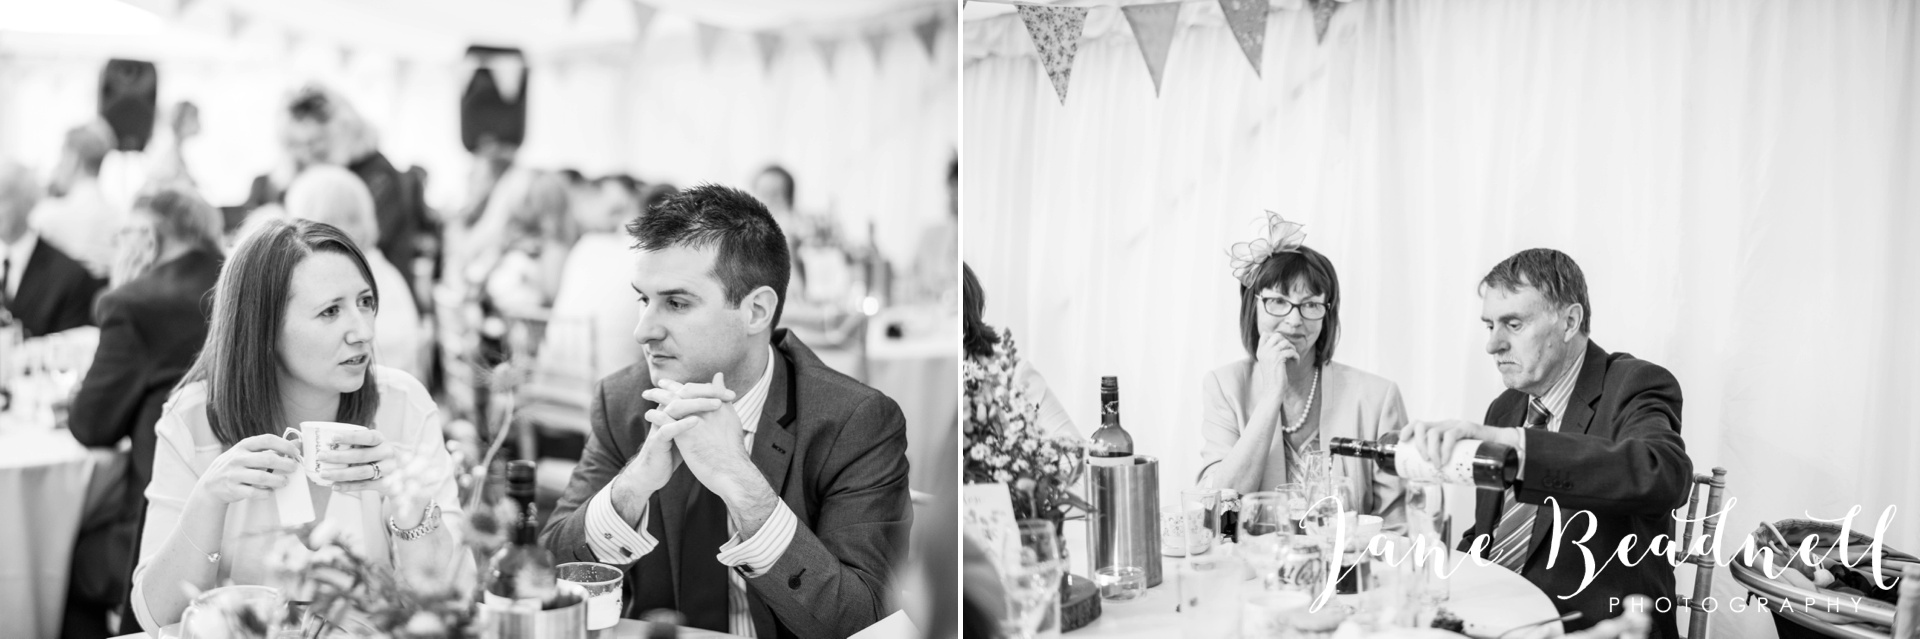 Yorkshire Wedding Photography the cheerful Chilli Barn Wedding by Jane Beadnell Photography_0194